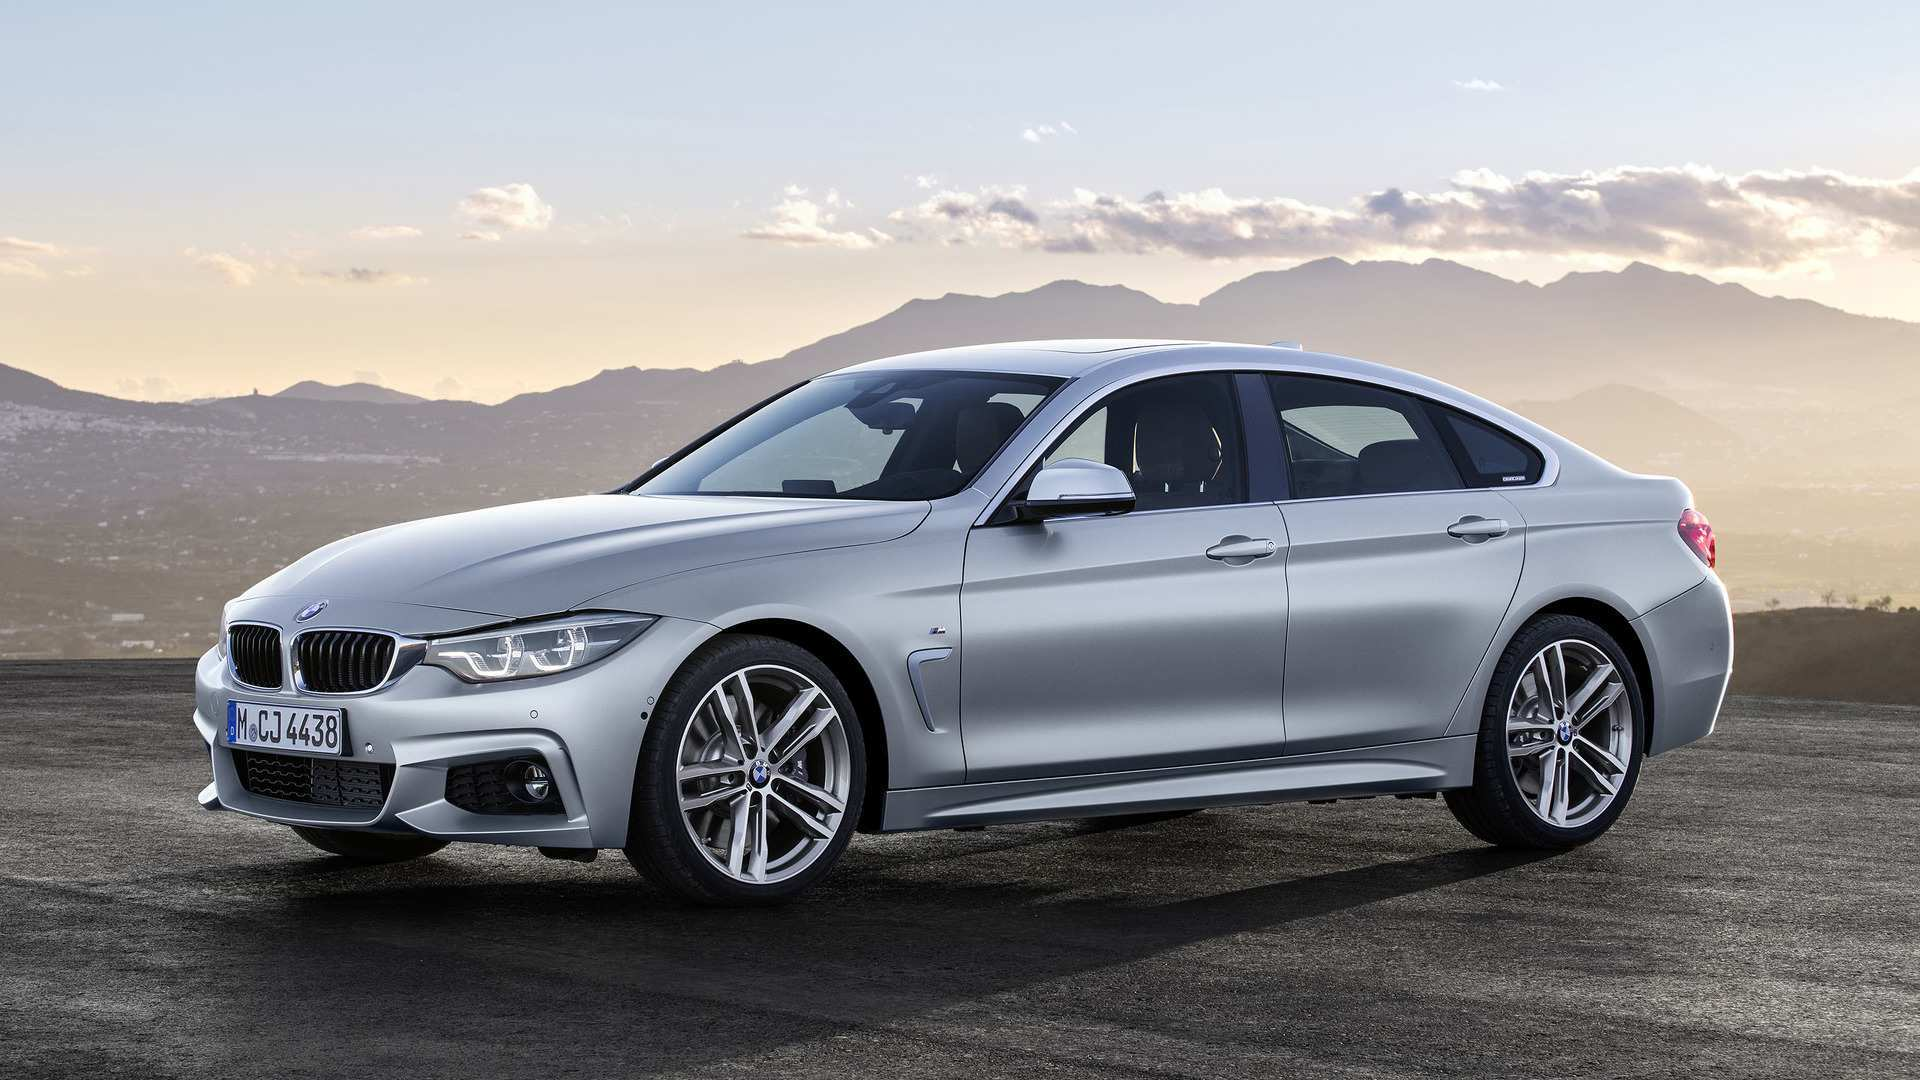 91 New 2020 Bmw 4 Series Gran Coupe Ratings by 2020 Bmw 4 Series Gran Coupe